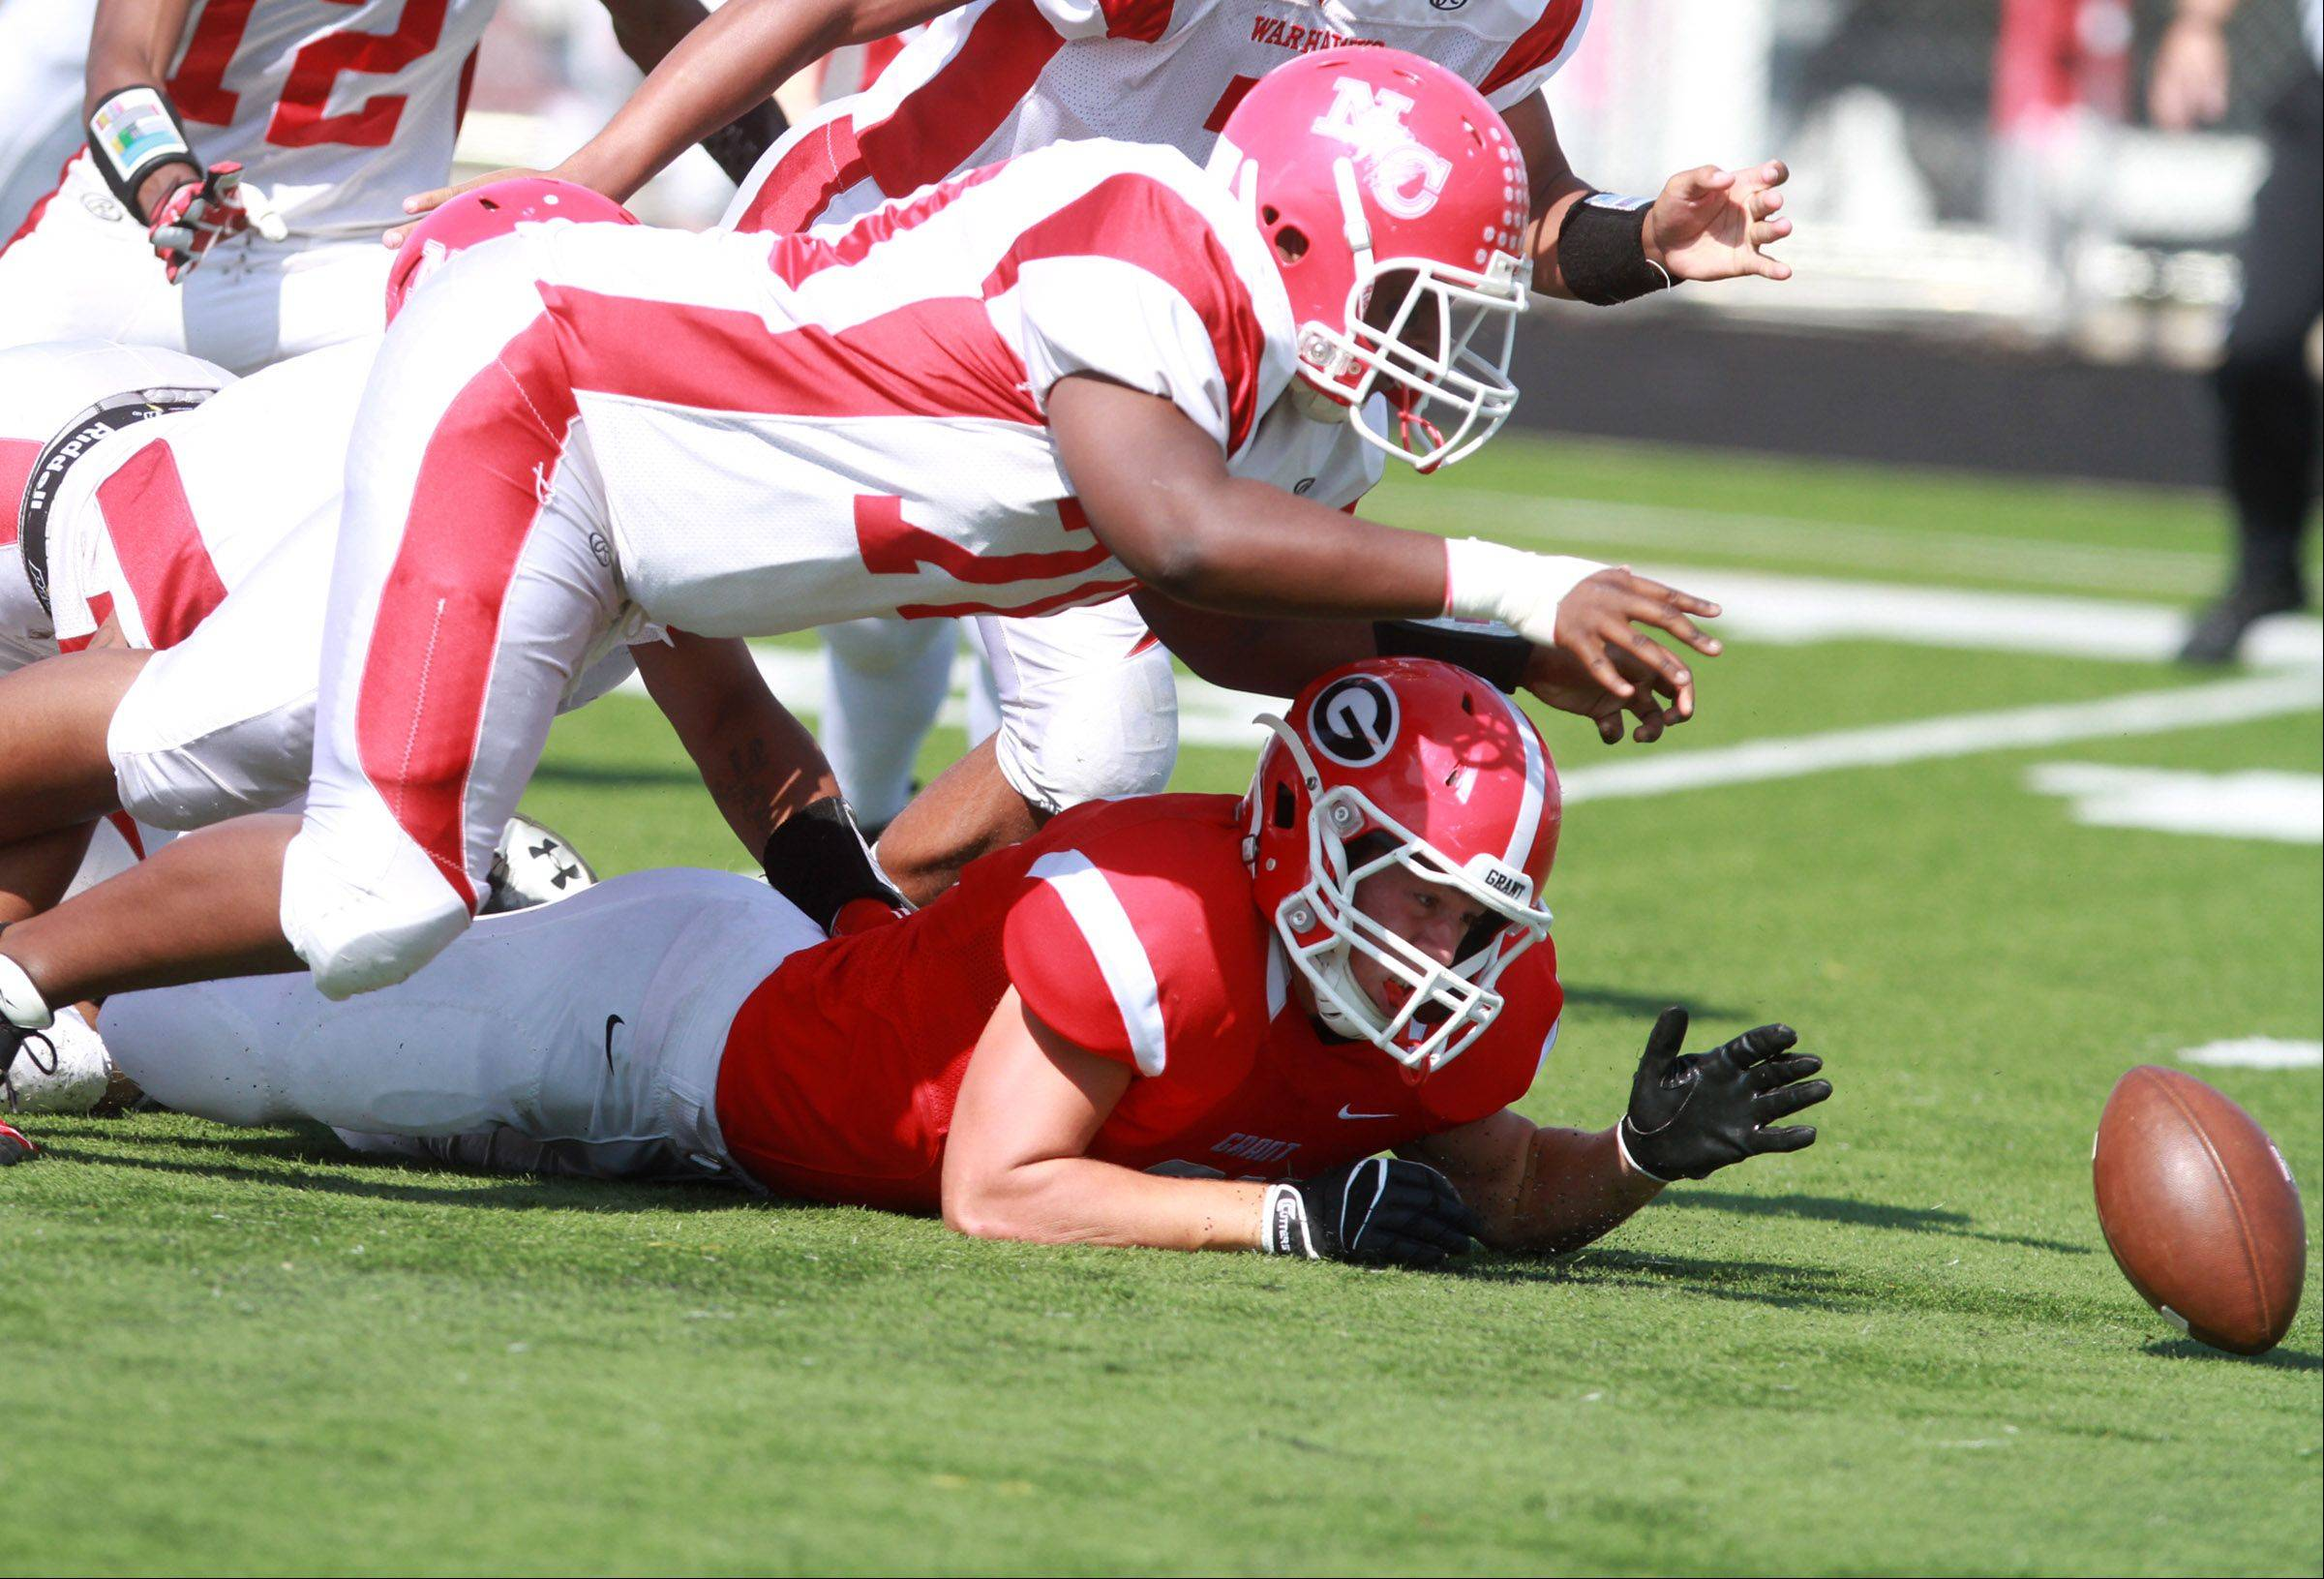 Grant running back Robert Dush, bottom, fumbles the football. It was recovered by North Chicago defender Darryl Coburn, above, at Grant on Saturday.